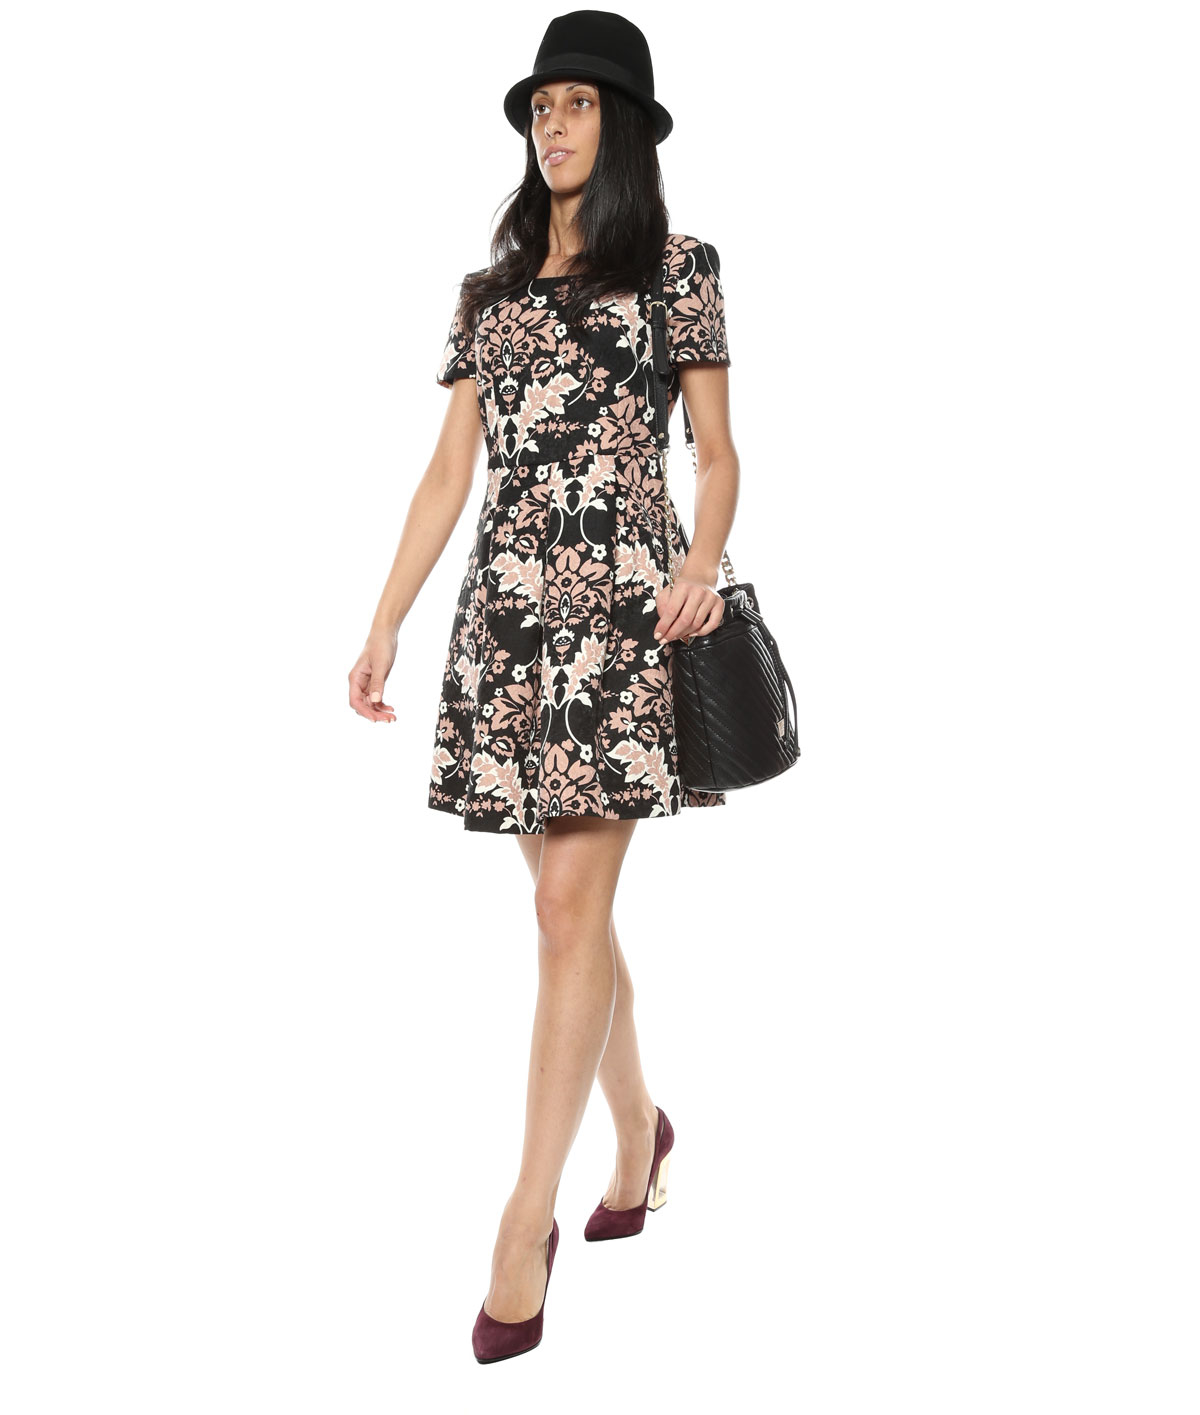 Liu jo Printed Dress in Black